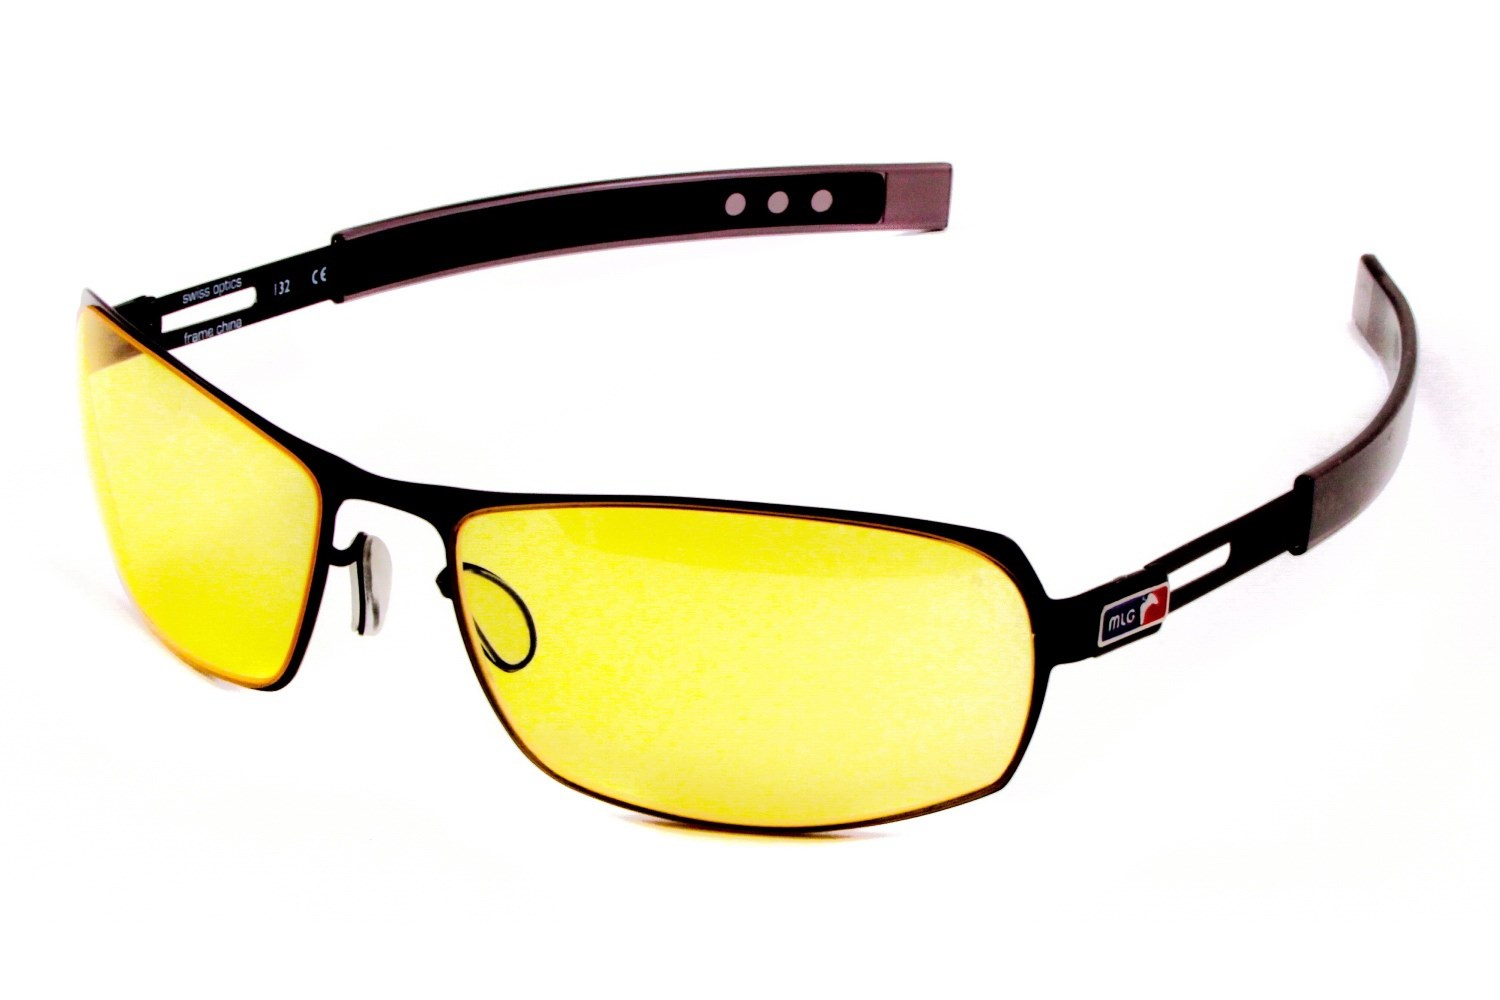 Gunnar MLG Phantom Gaming Glasses